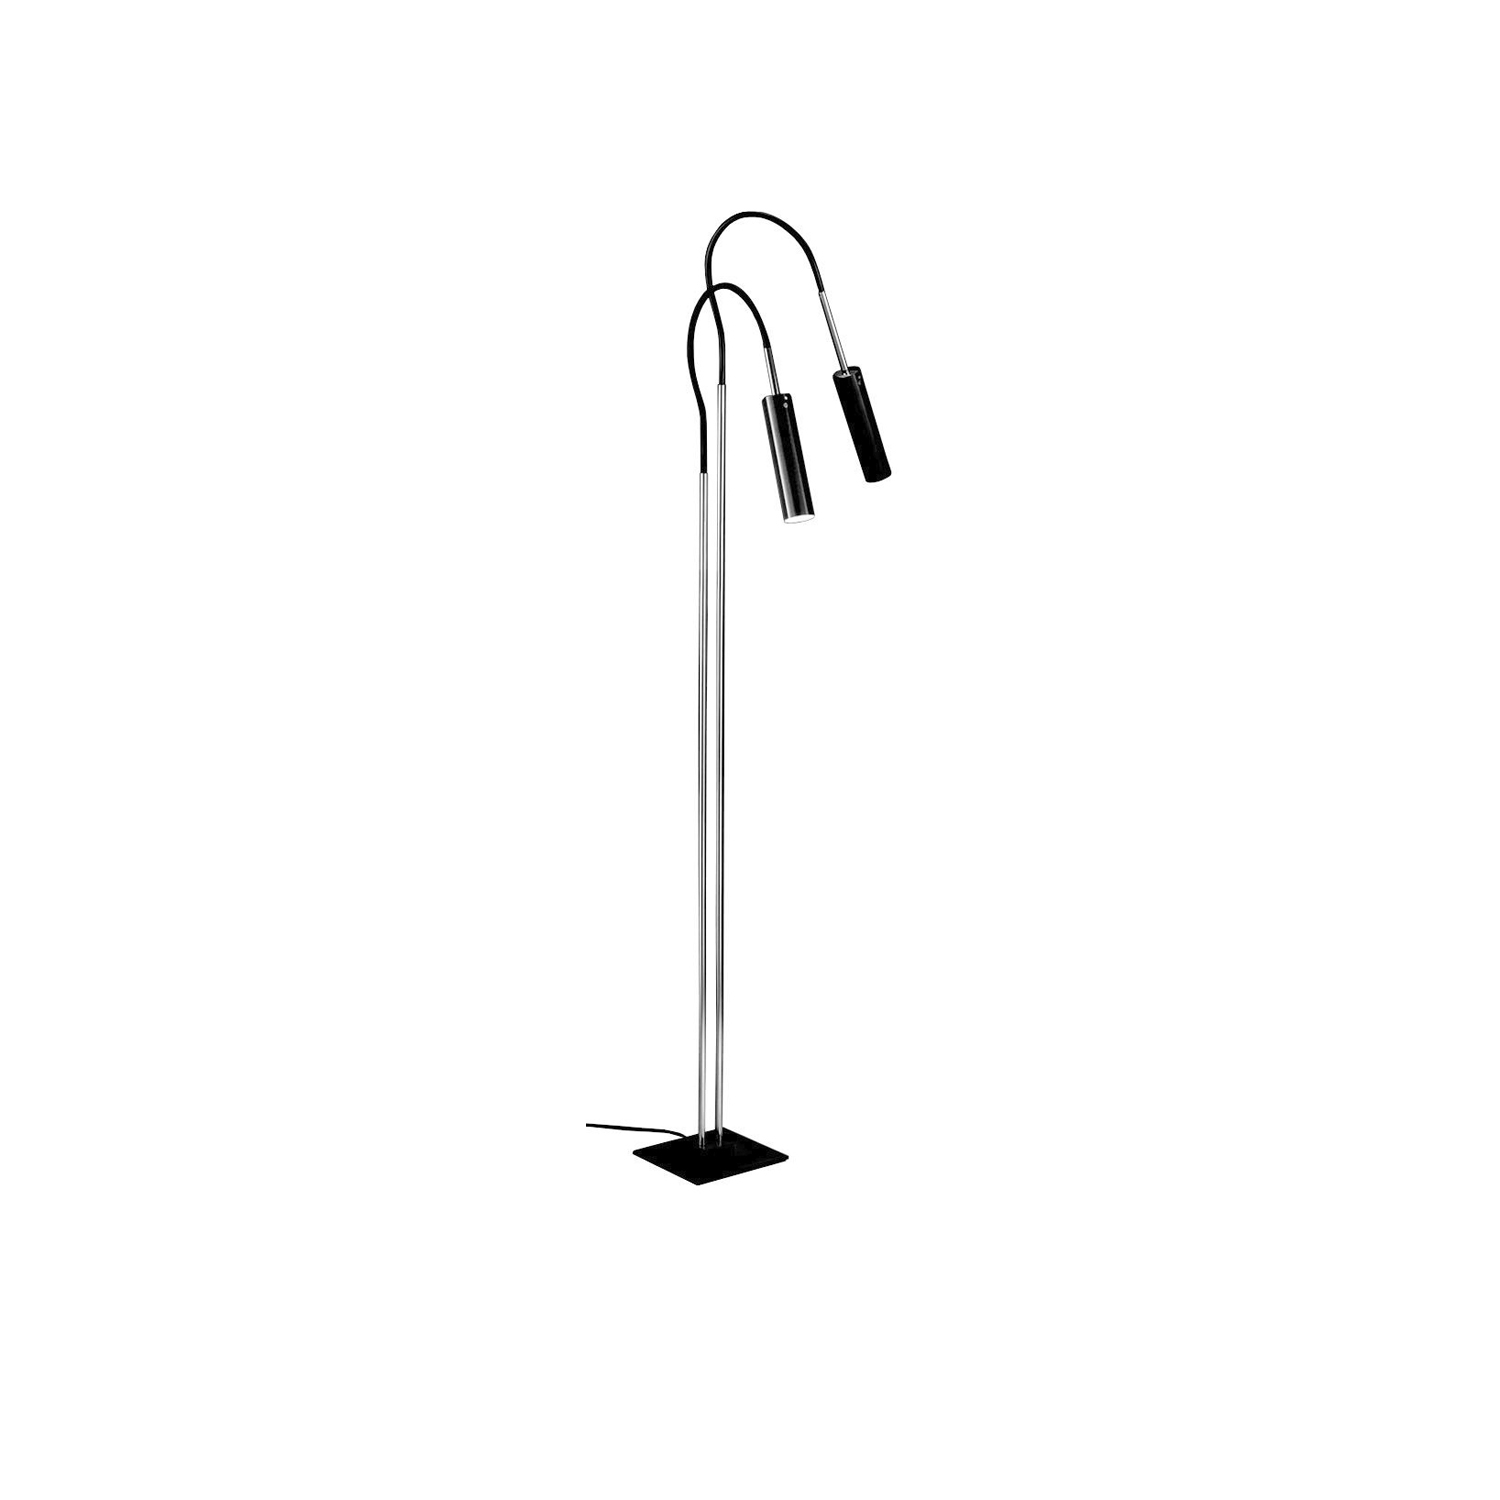 Lucenera 208 Floor Lamp - Lucenera was developed from a simple concept: taking the limelight off the lamp and giving centre stage to the light, depending on the subject illuminated. To achieve this, Enzo Catellani used a black carbon tube and flexible support. The shape is the simplest one possible; the object is the utmost in versatility. | Matter of Stuff